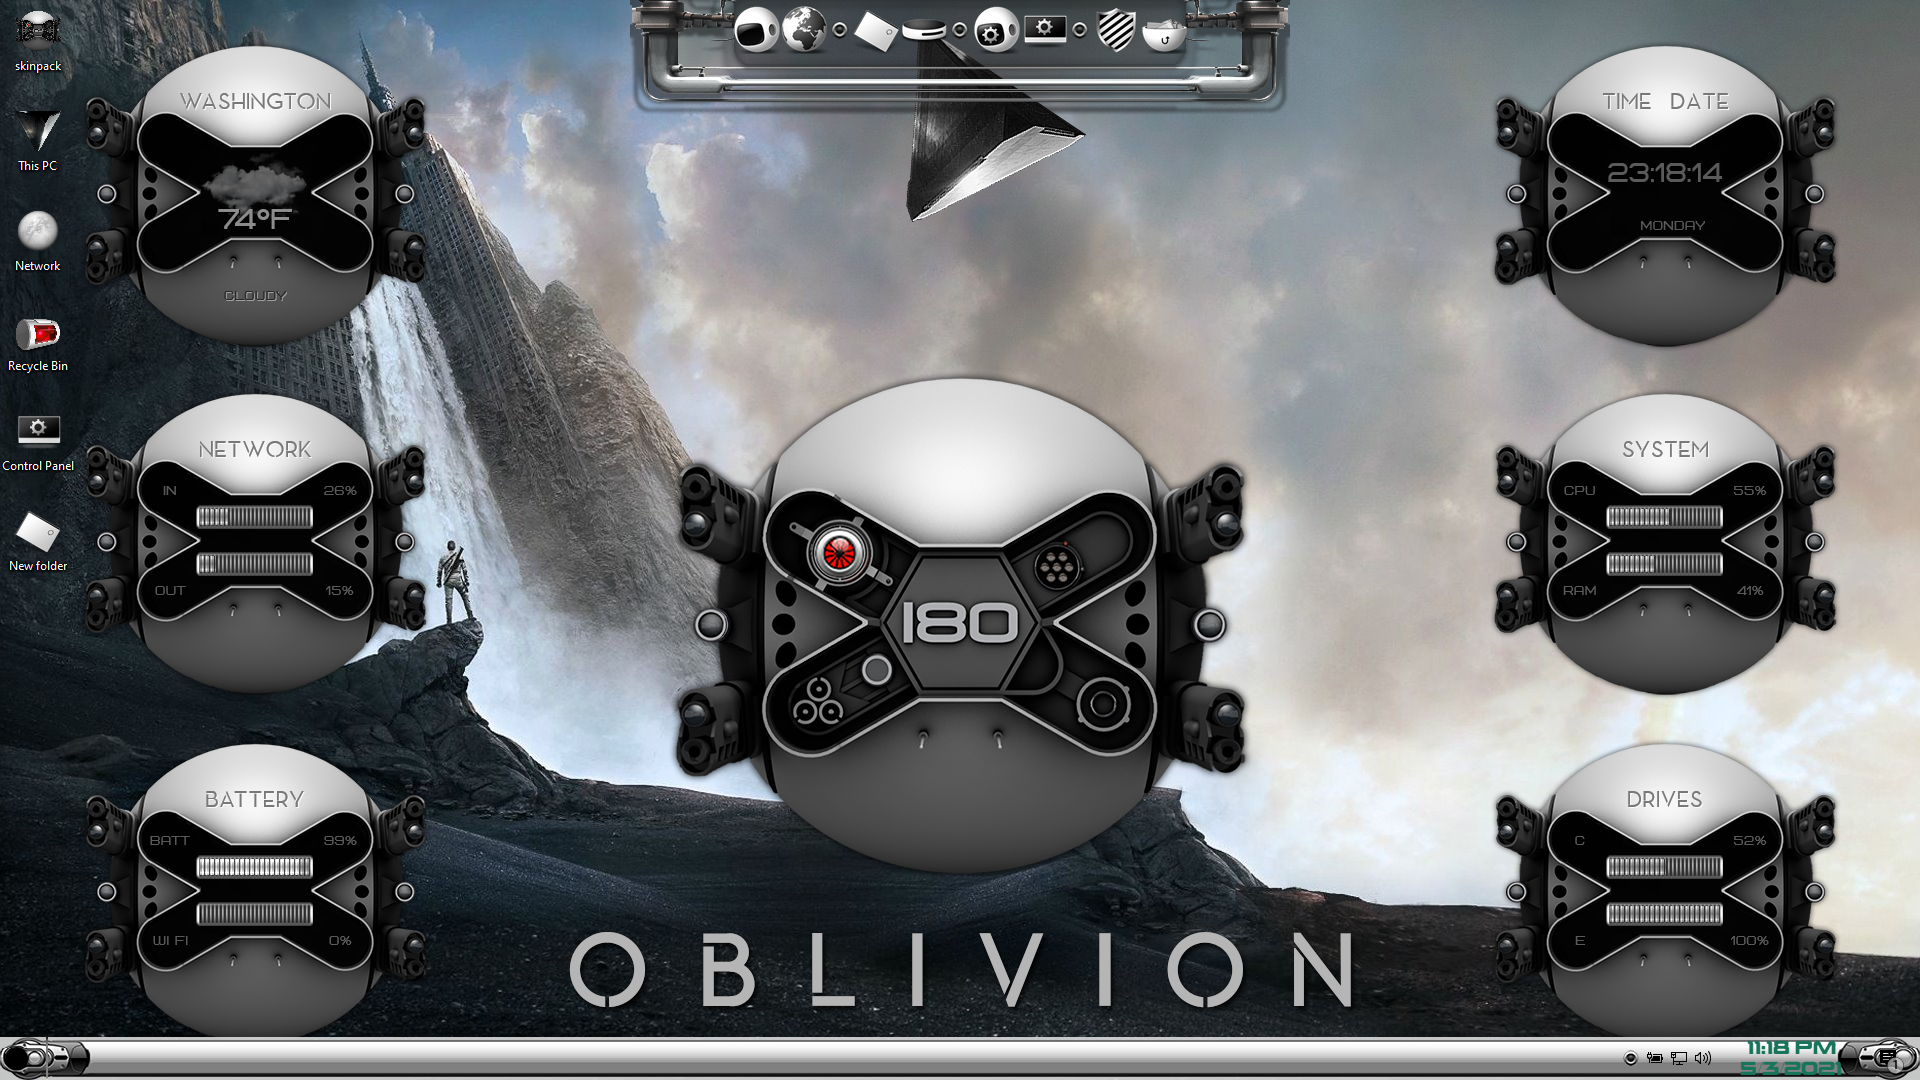 OBLIVION Premium SkinPack for Windows 10